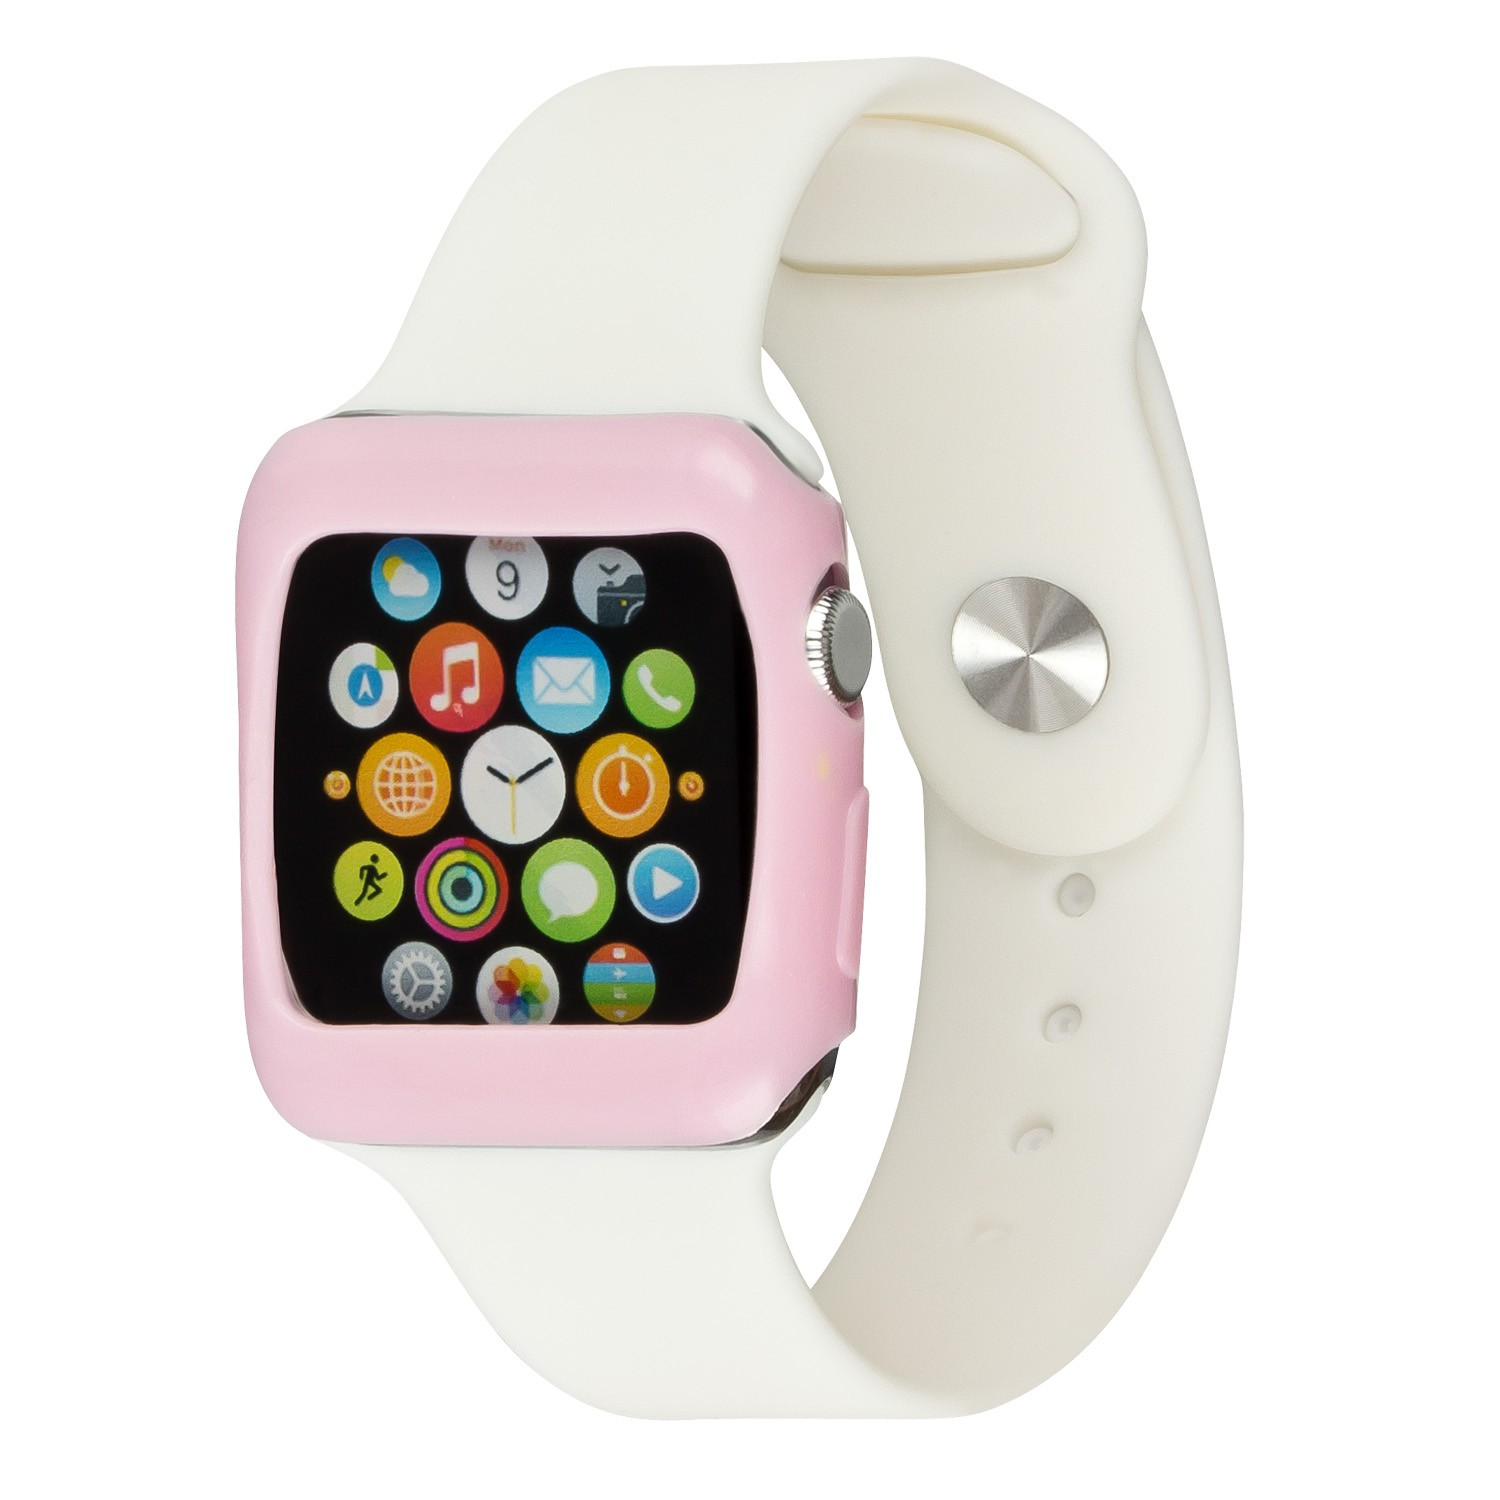 Yemota Pro Slimcase Apple Watch 38mm - Rosa